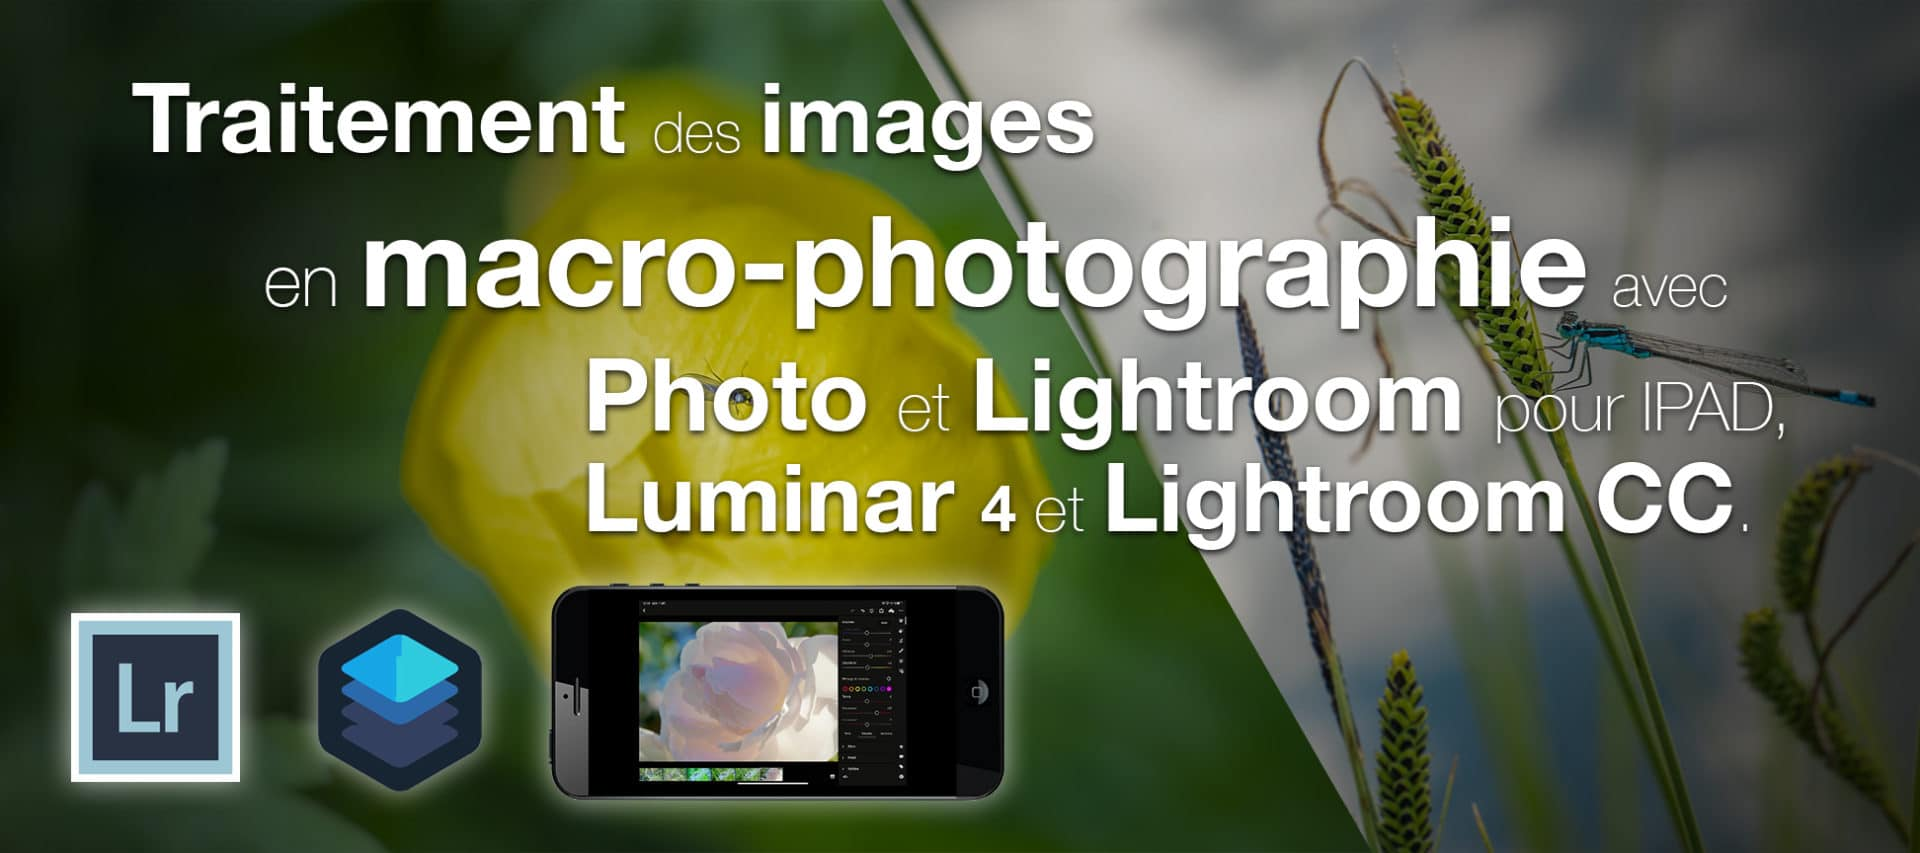 Traitement des images en macro-photographie avec Photo, Lightroom Mobile, Luminar